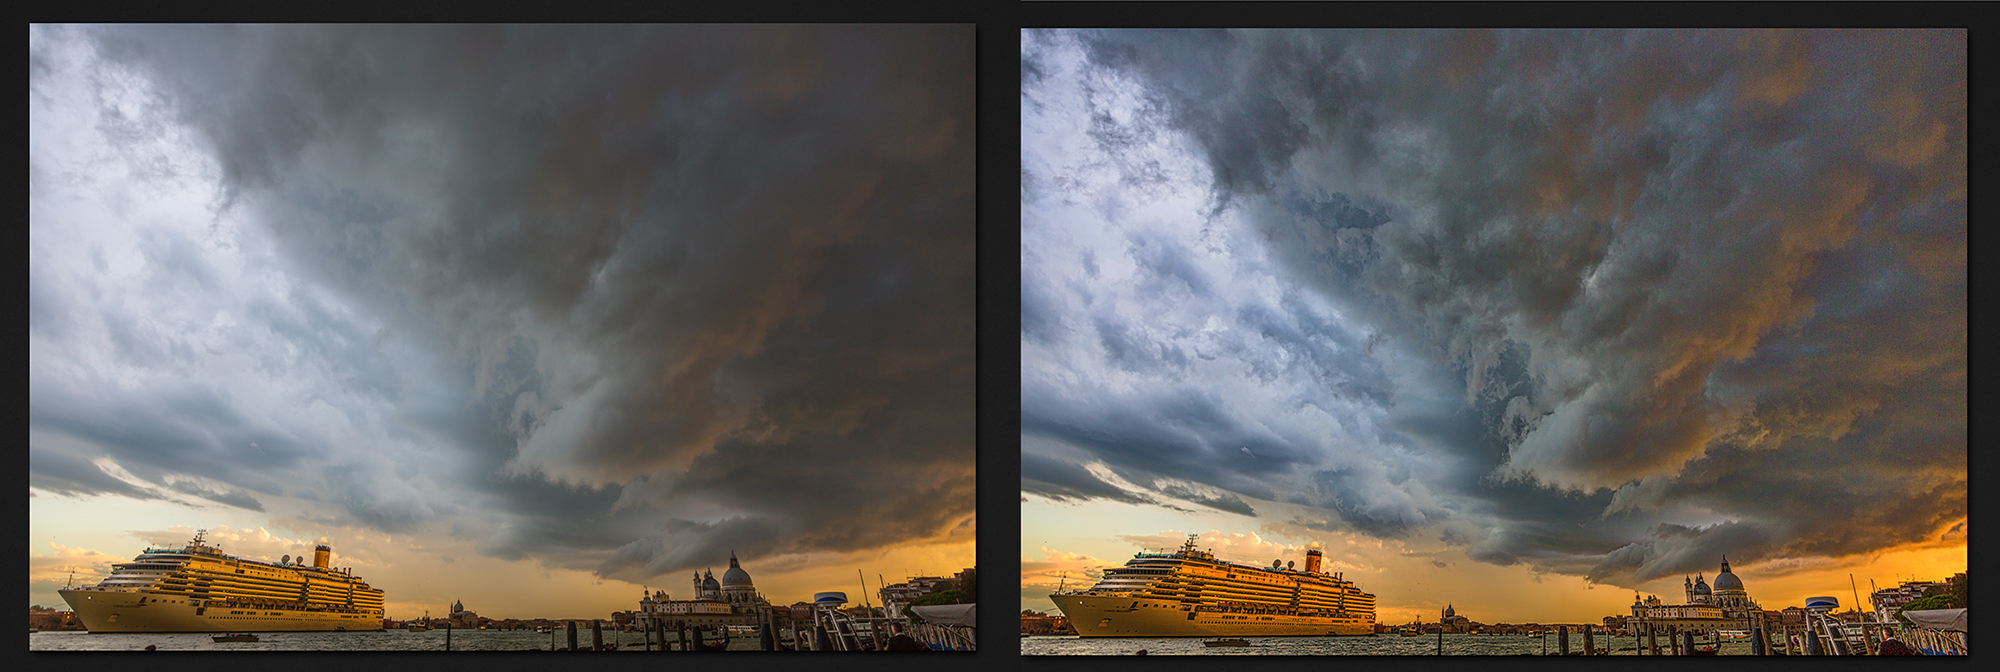 Venice Macphun before and after Intensify